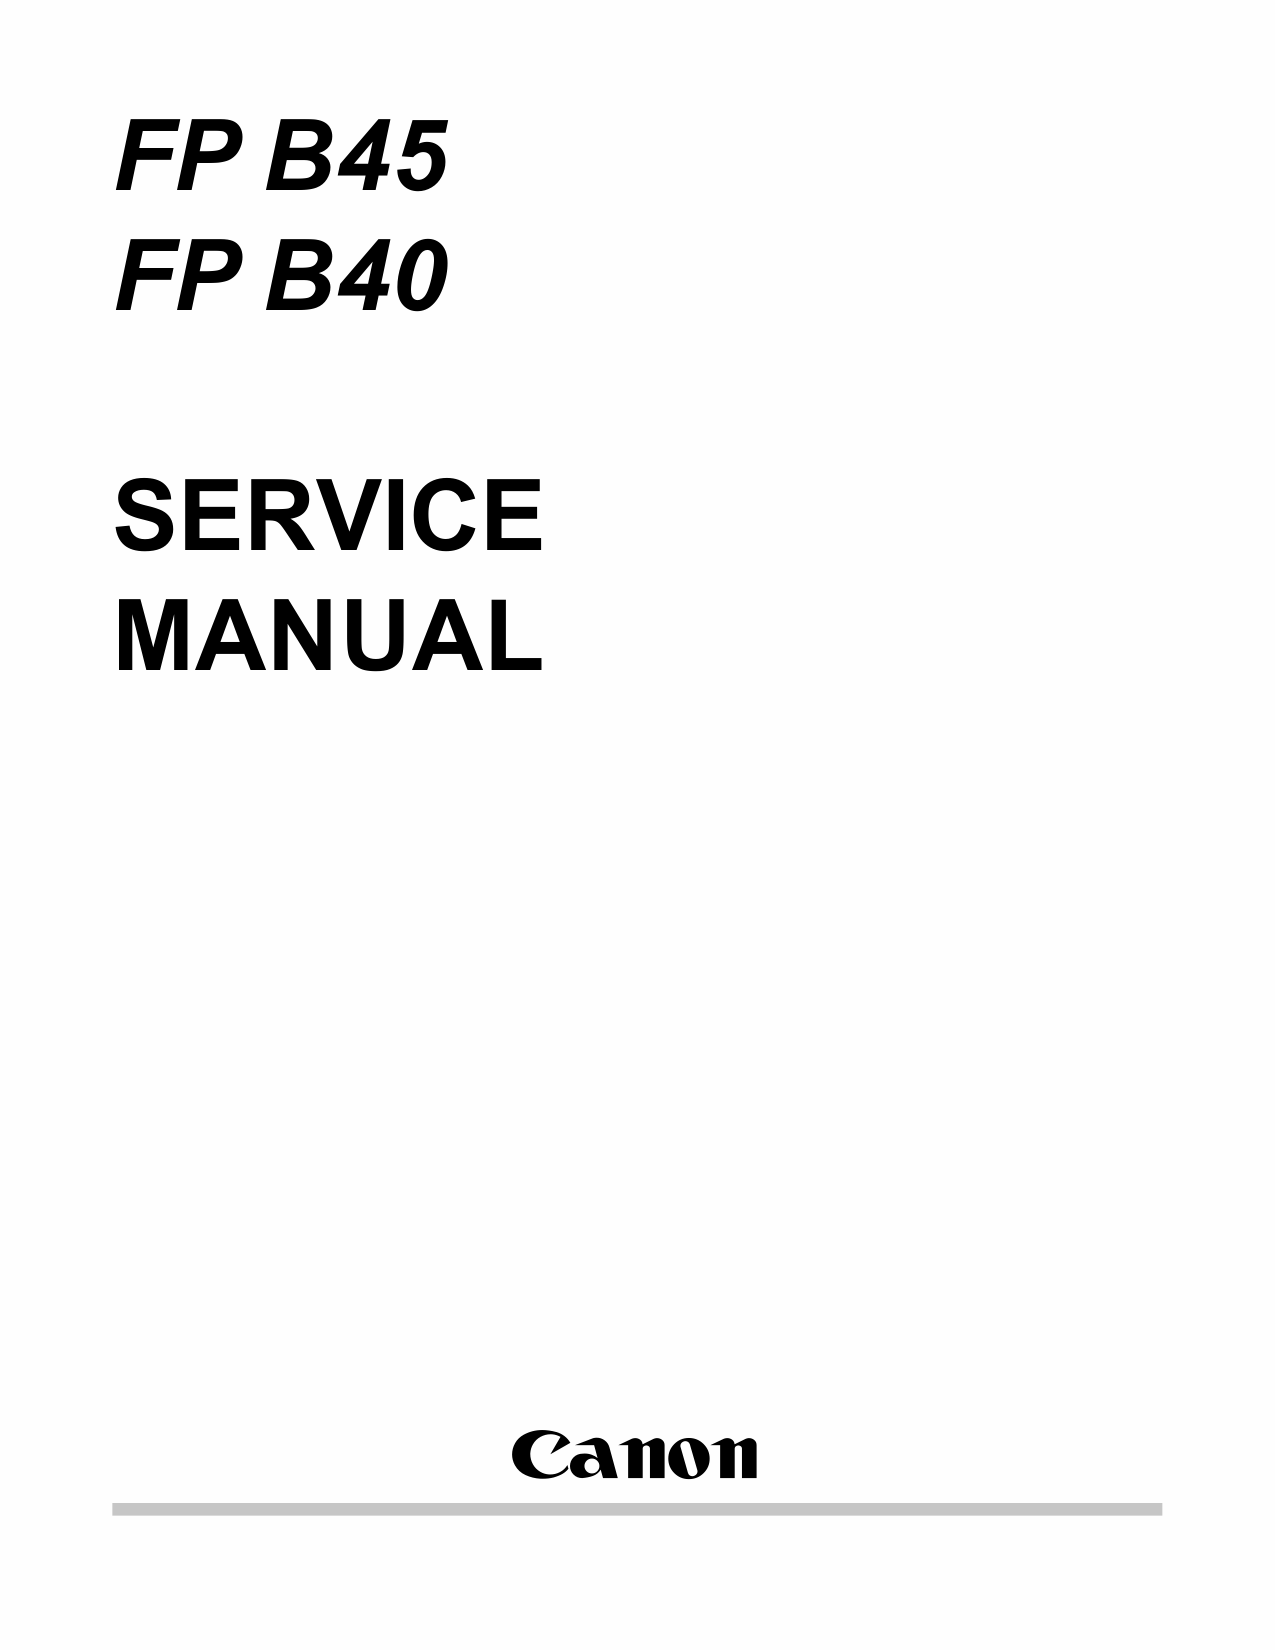 Canon FAX FP-B40 B45 Parts and Service Manual